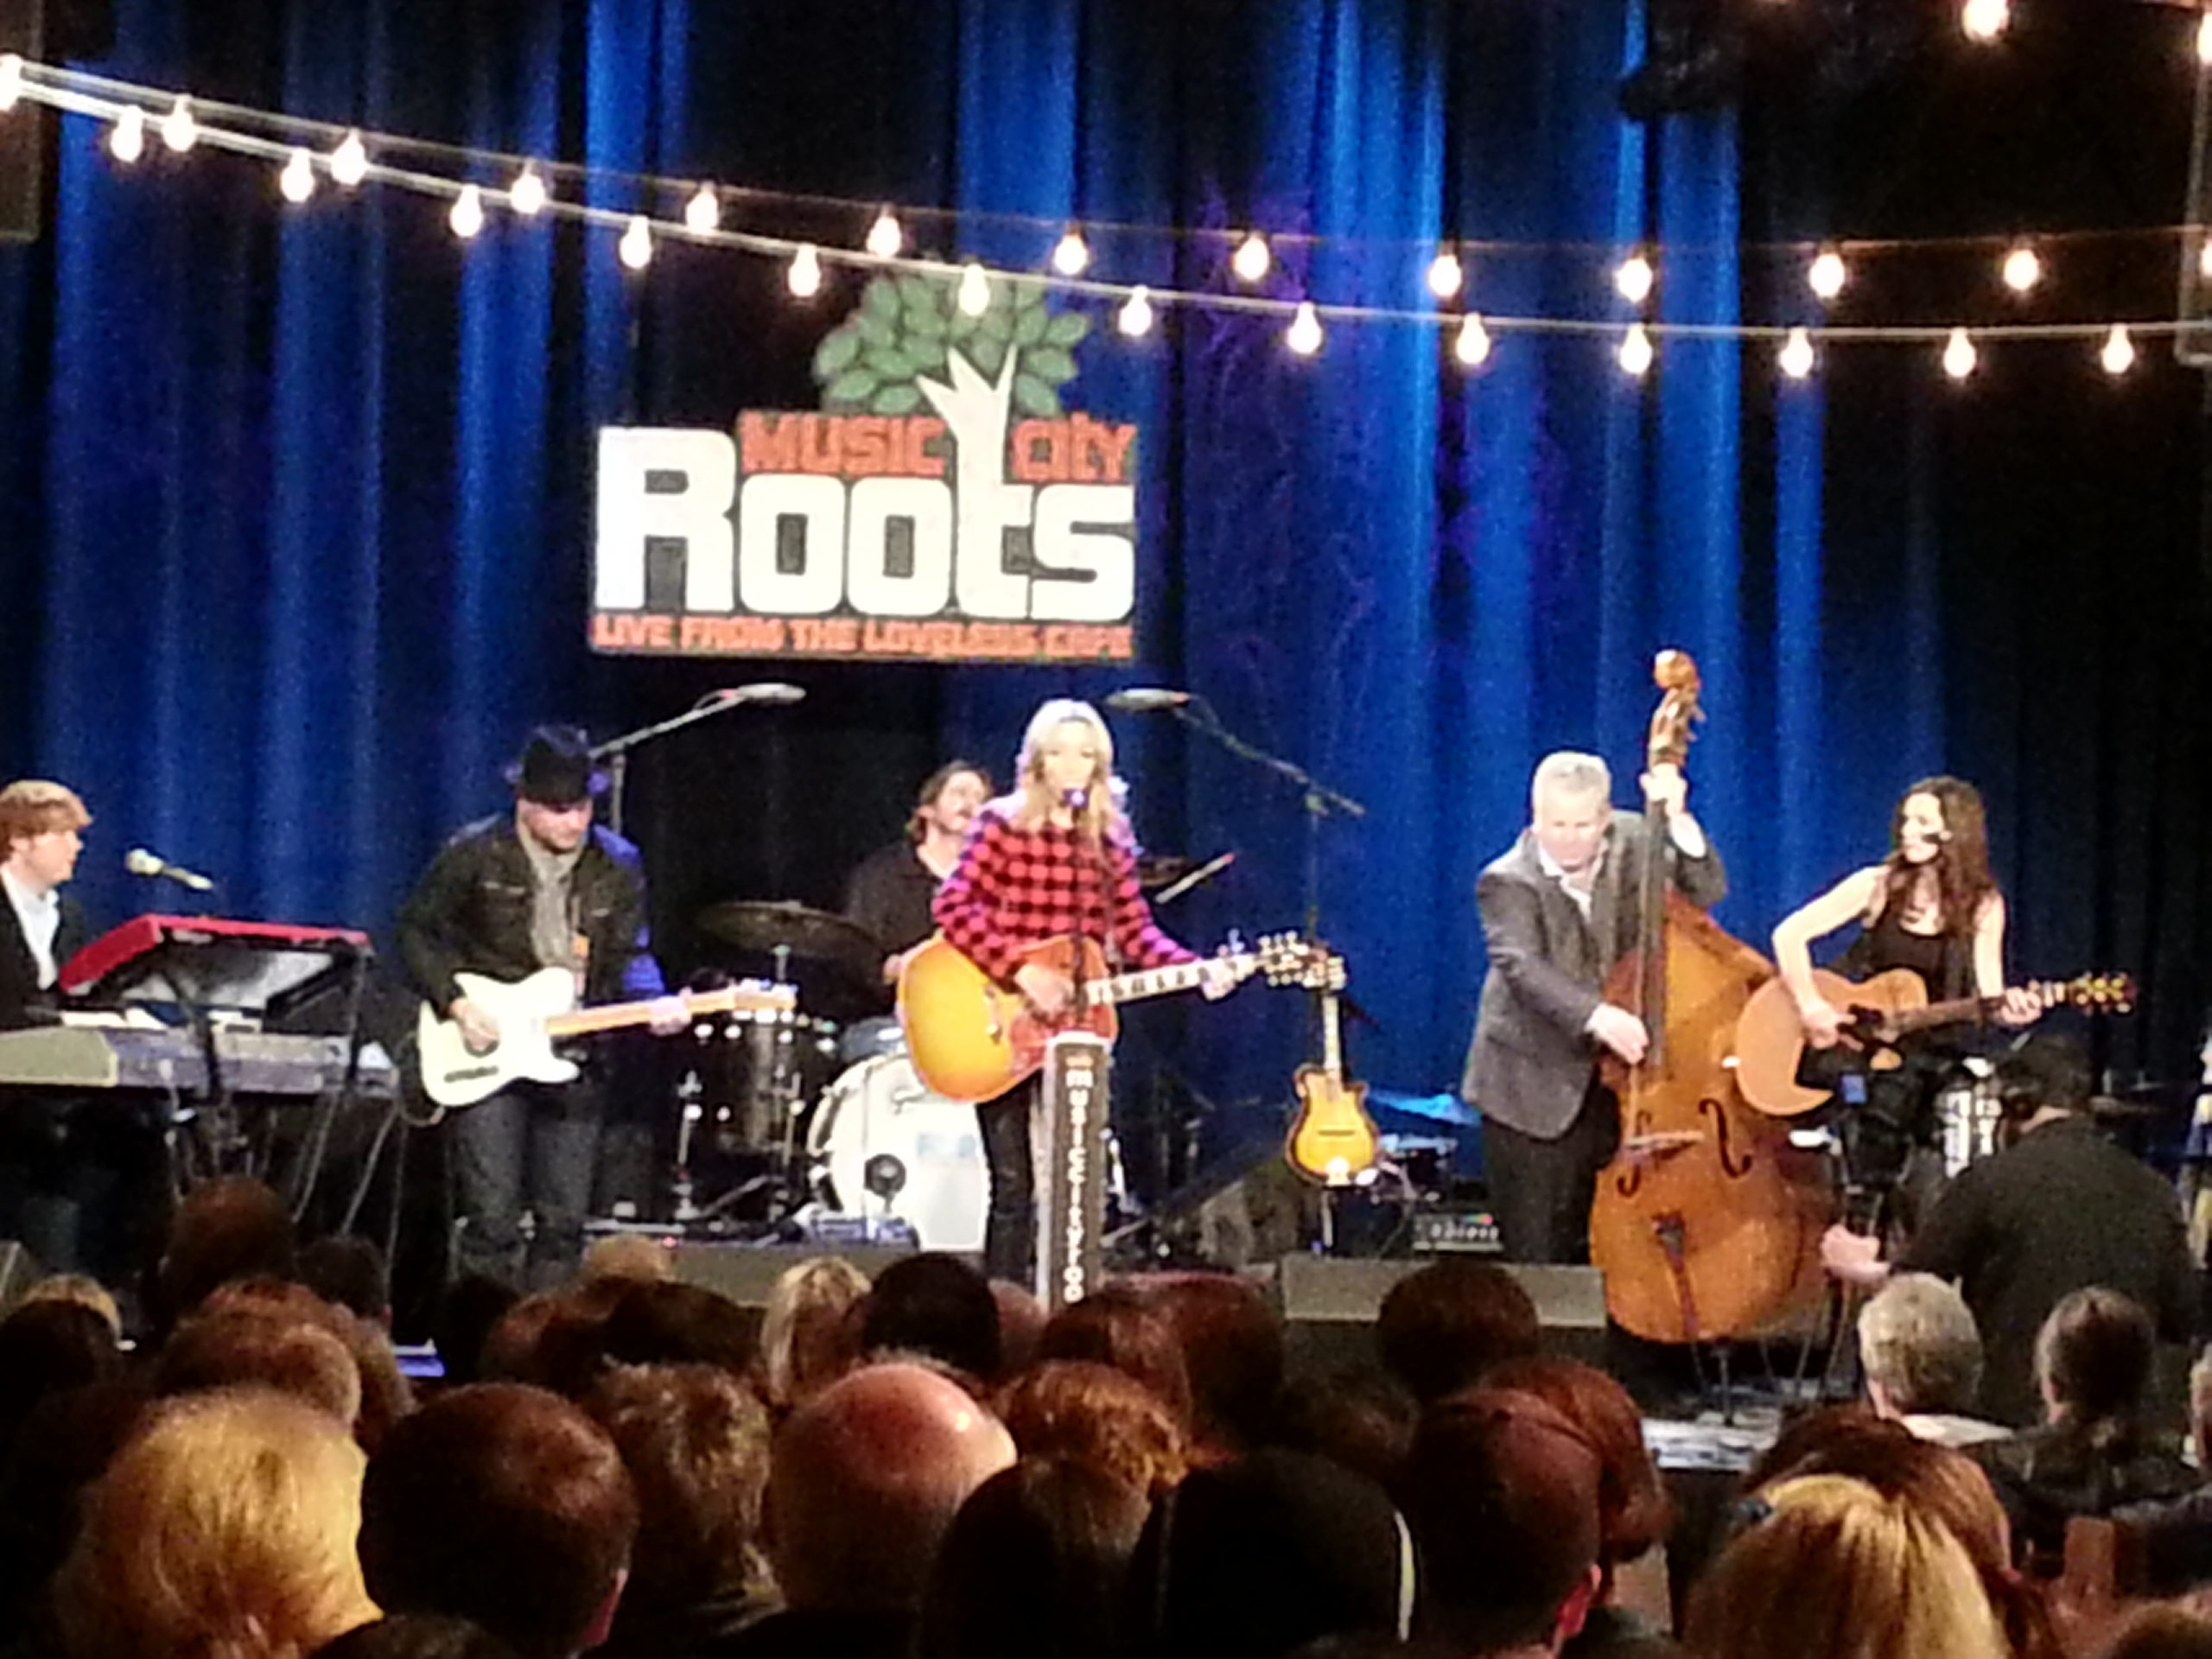 Ashley Monroe Gets Glory-Bound at Music City Roots